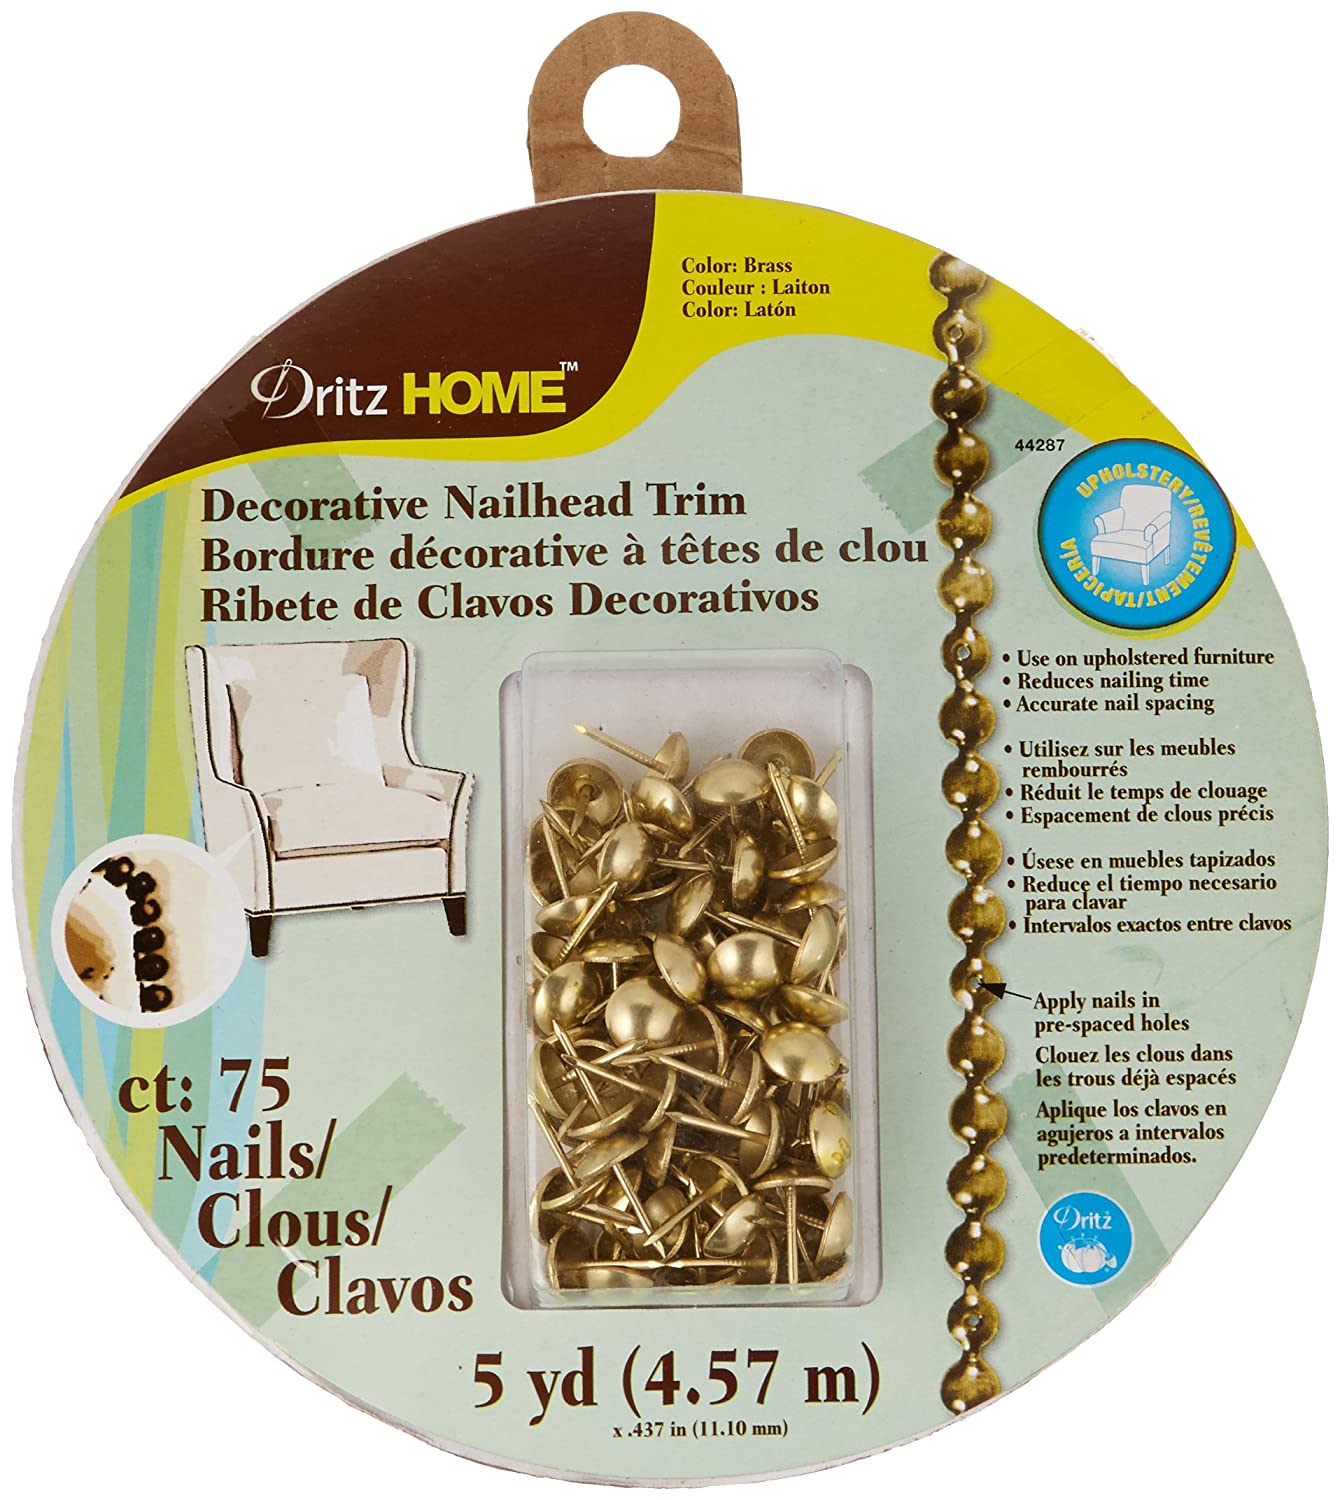 Dritz Home Decorative Nailhead Trim 28 Images Build A